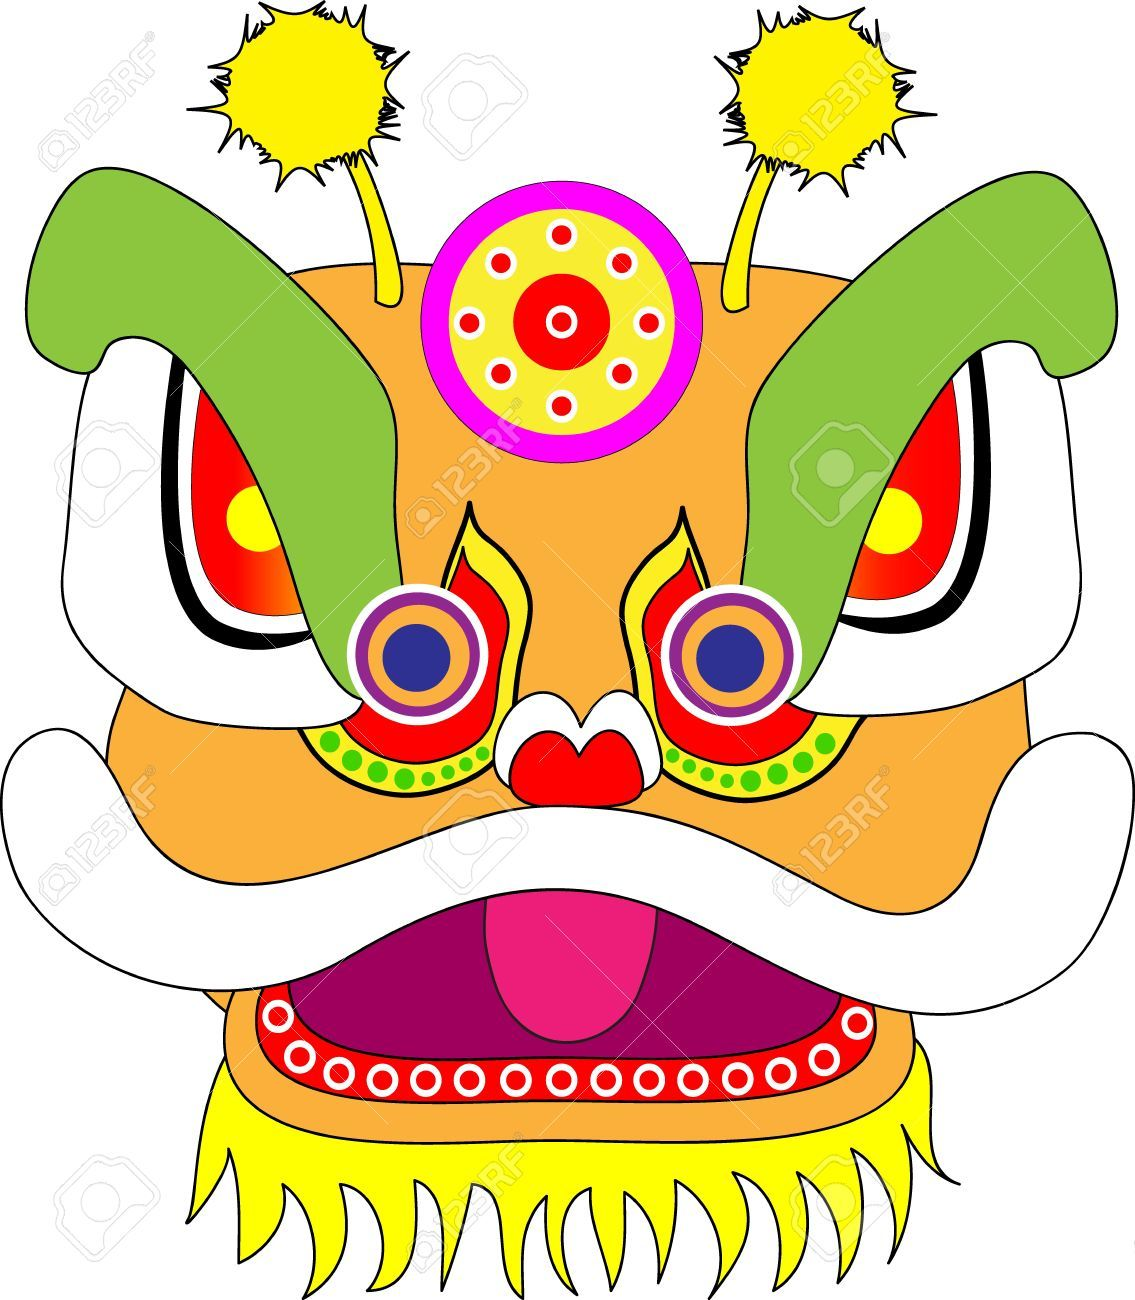 34+ Cute chinese dragon clipart information